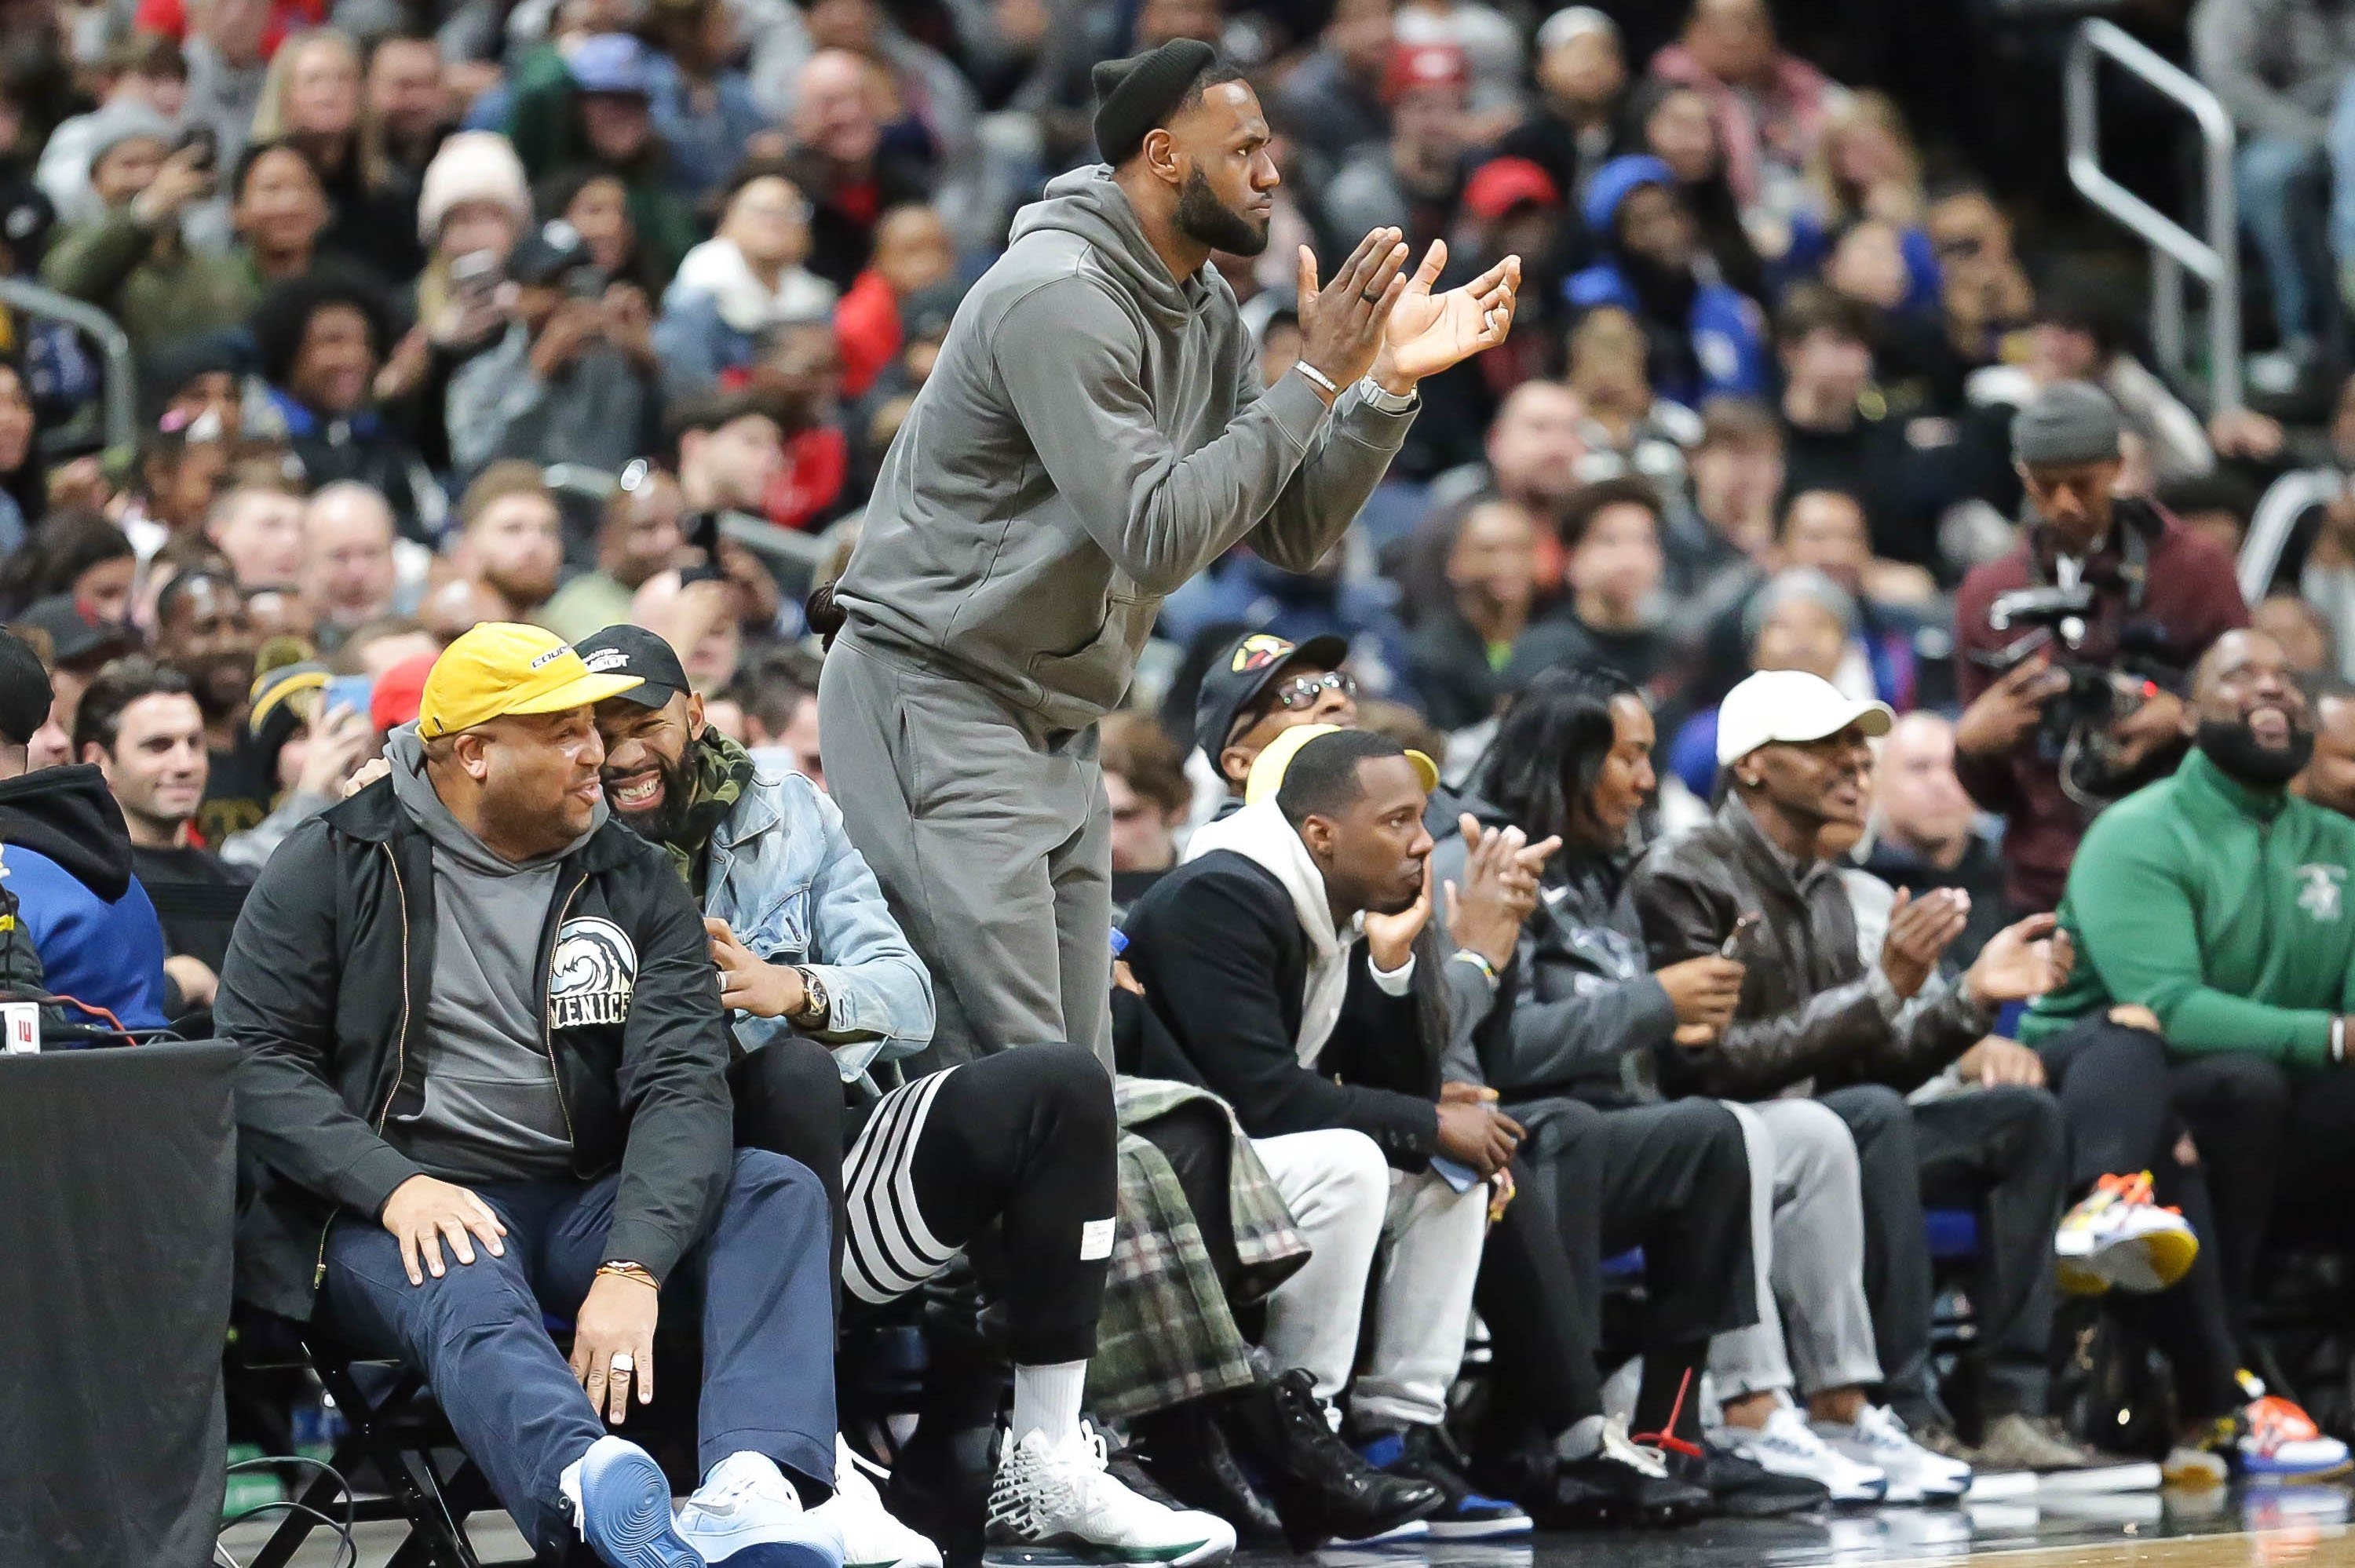 LeBron James, our retroactive 2003 Male High School Athlete of the Year, cheers on his son at a game in December.